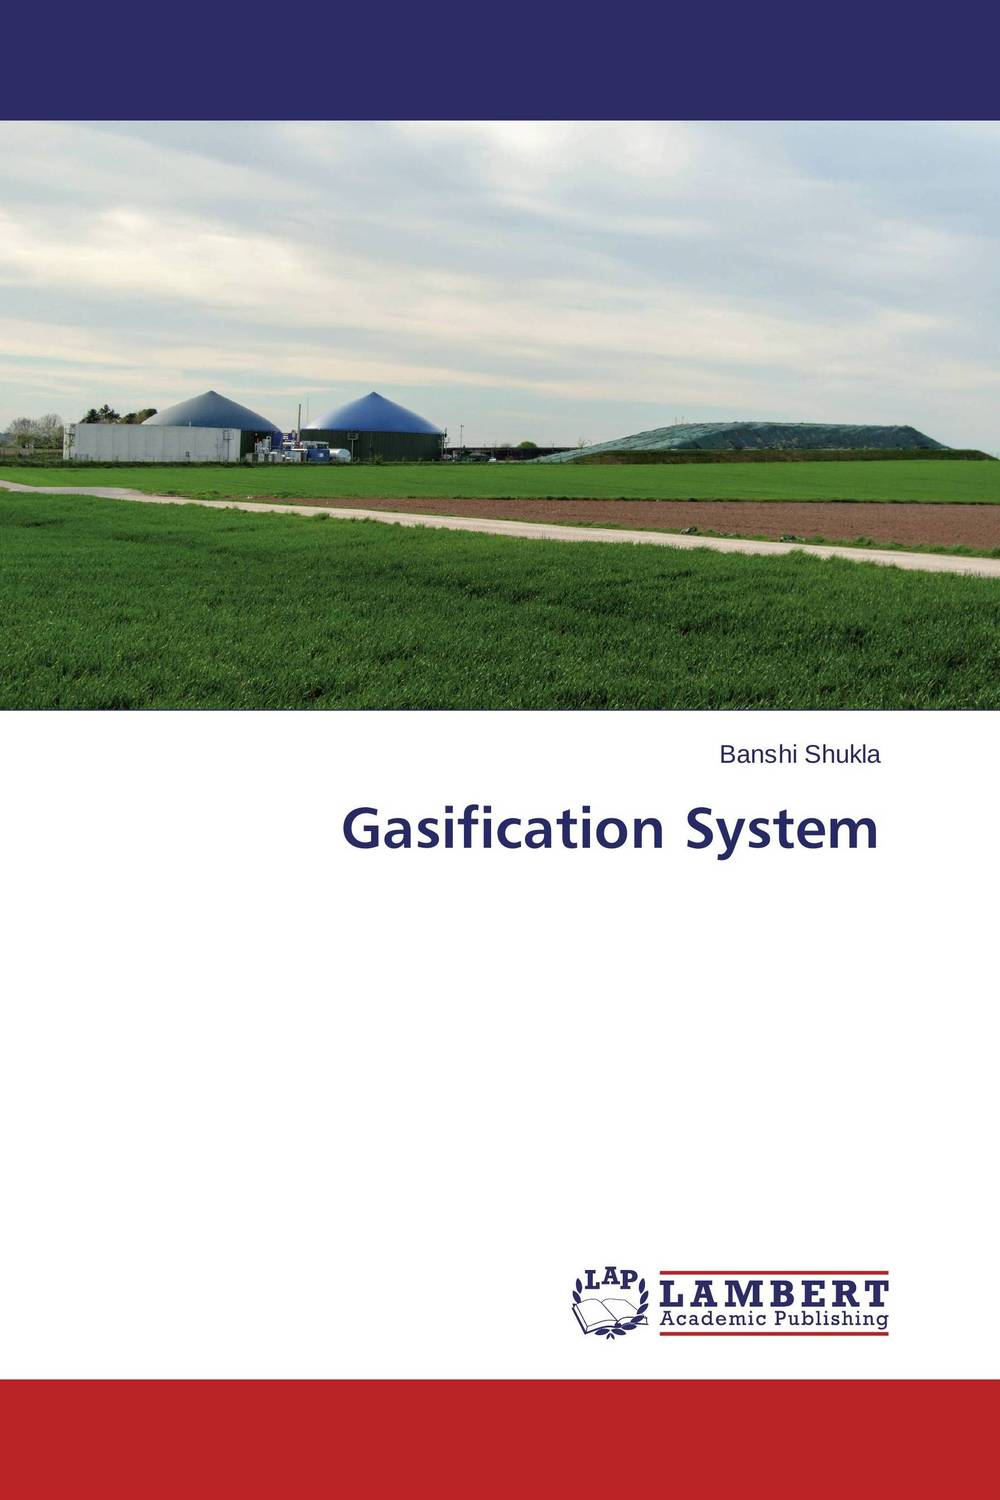 Gasification System hydrogen production through combined pyrolysis and steam gasification